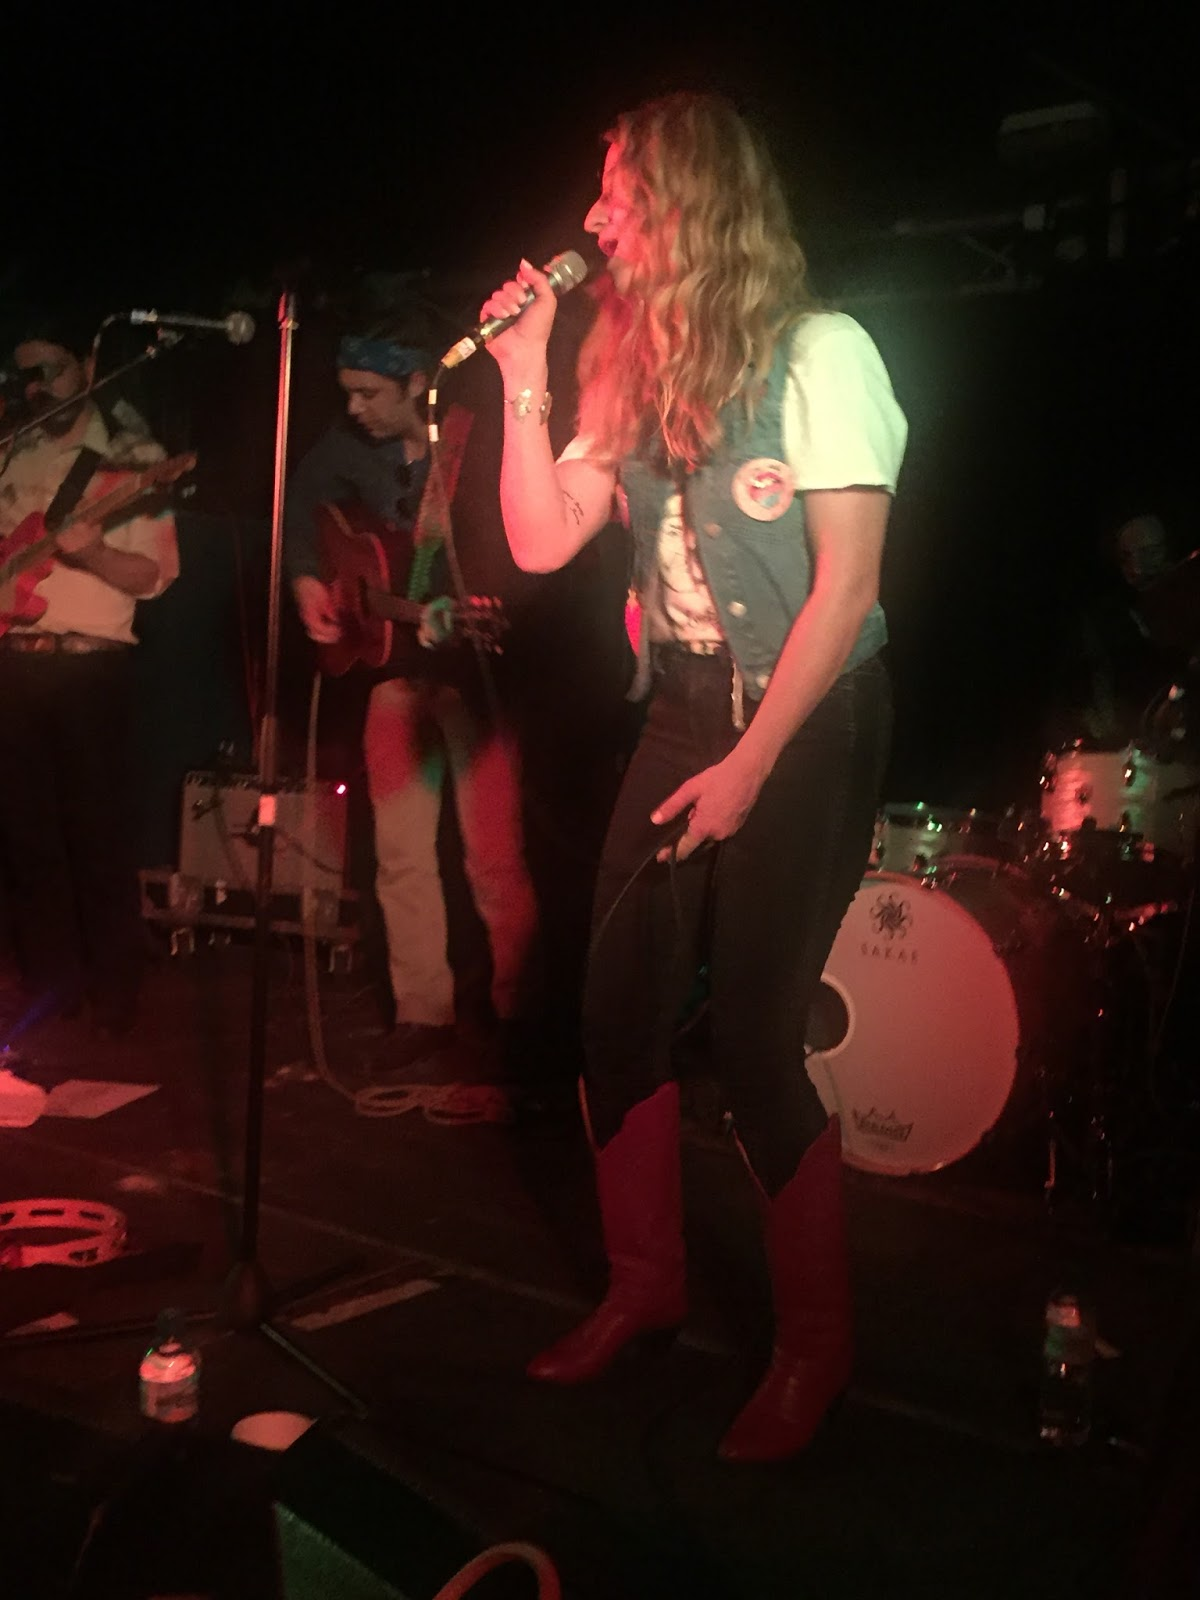 Buy margo price tickets margo price tour details margo - Margo Explained Early In The Show That An Injured Finger Prevented Her From Playing Guitar This Evening The Upshot From This Is That She Had To Play The